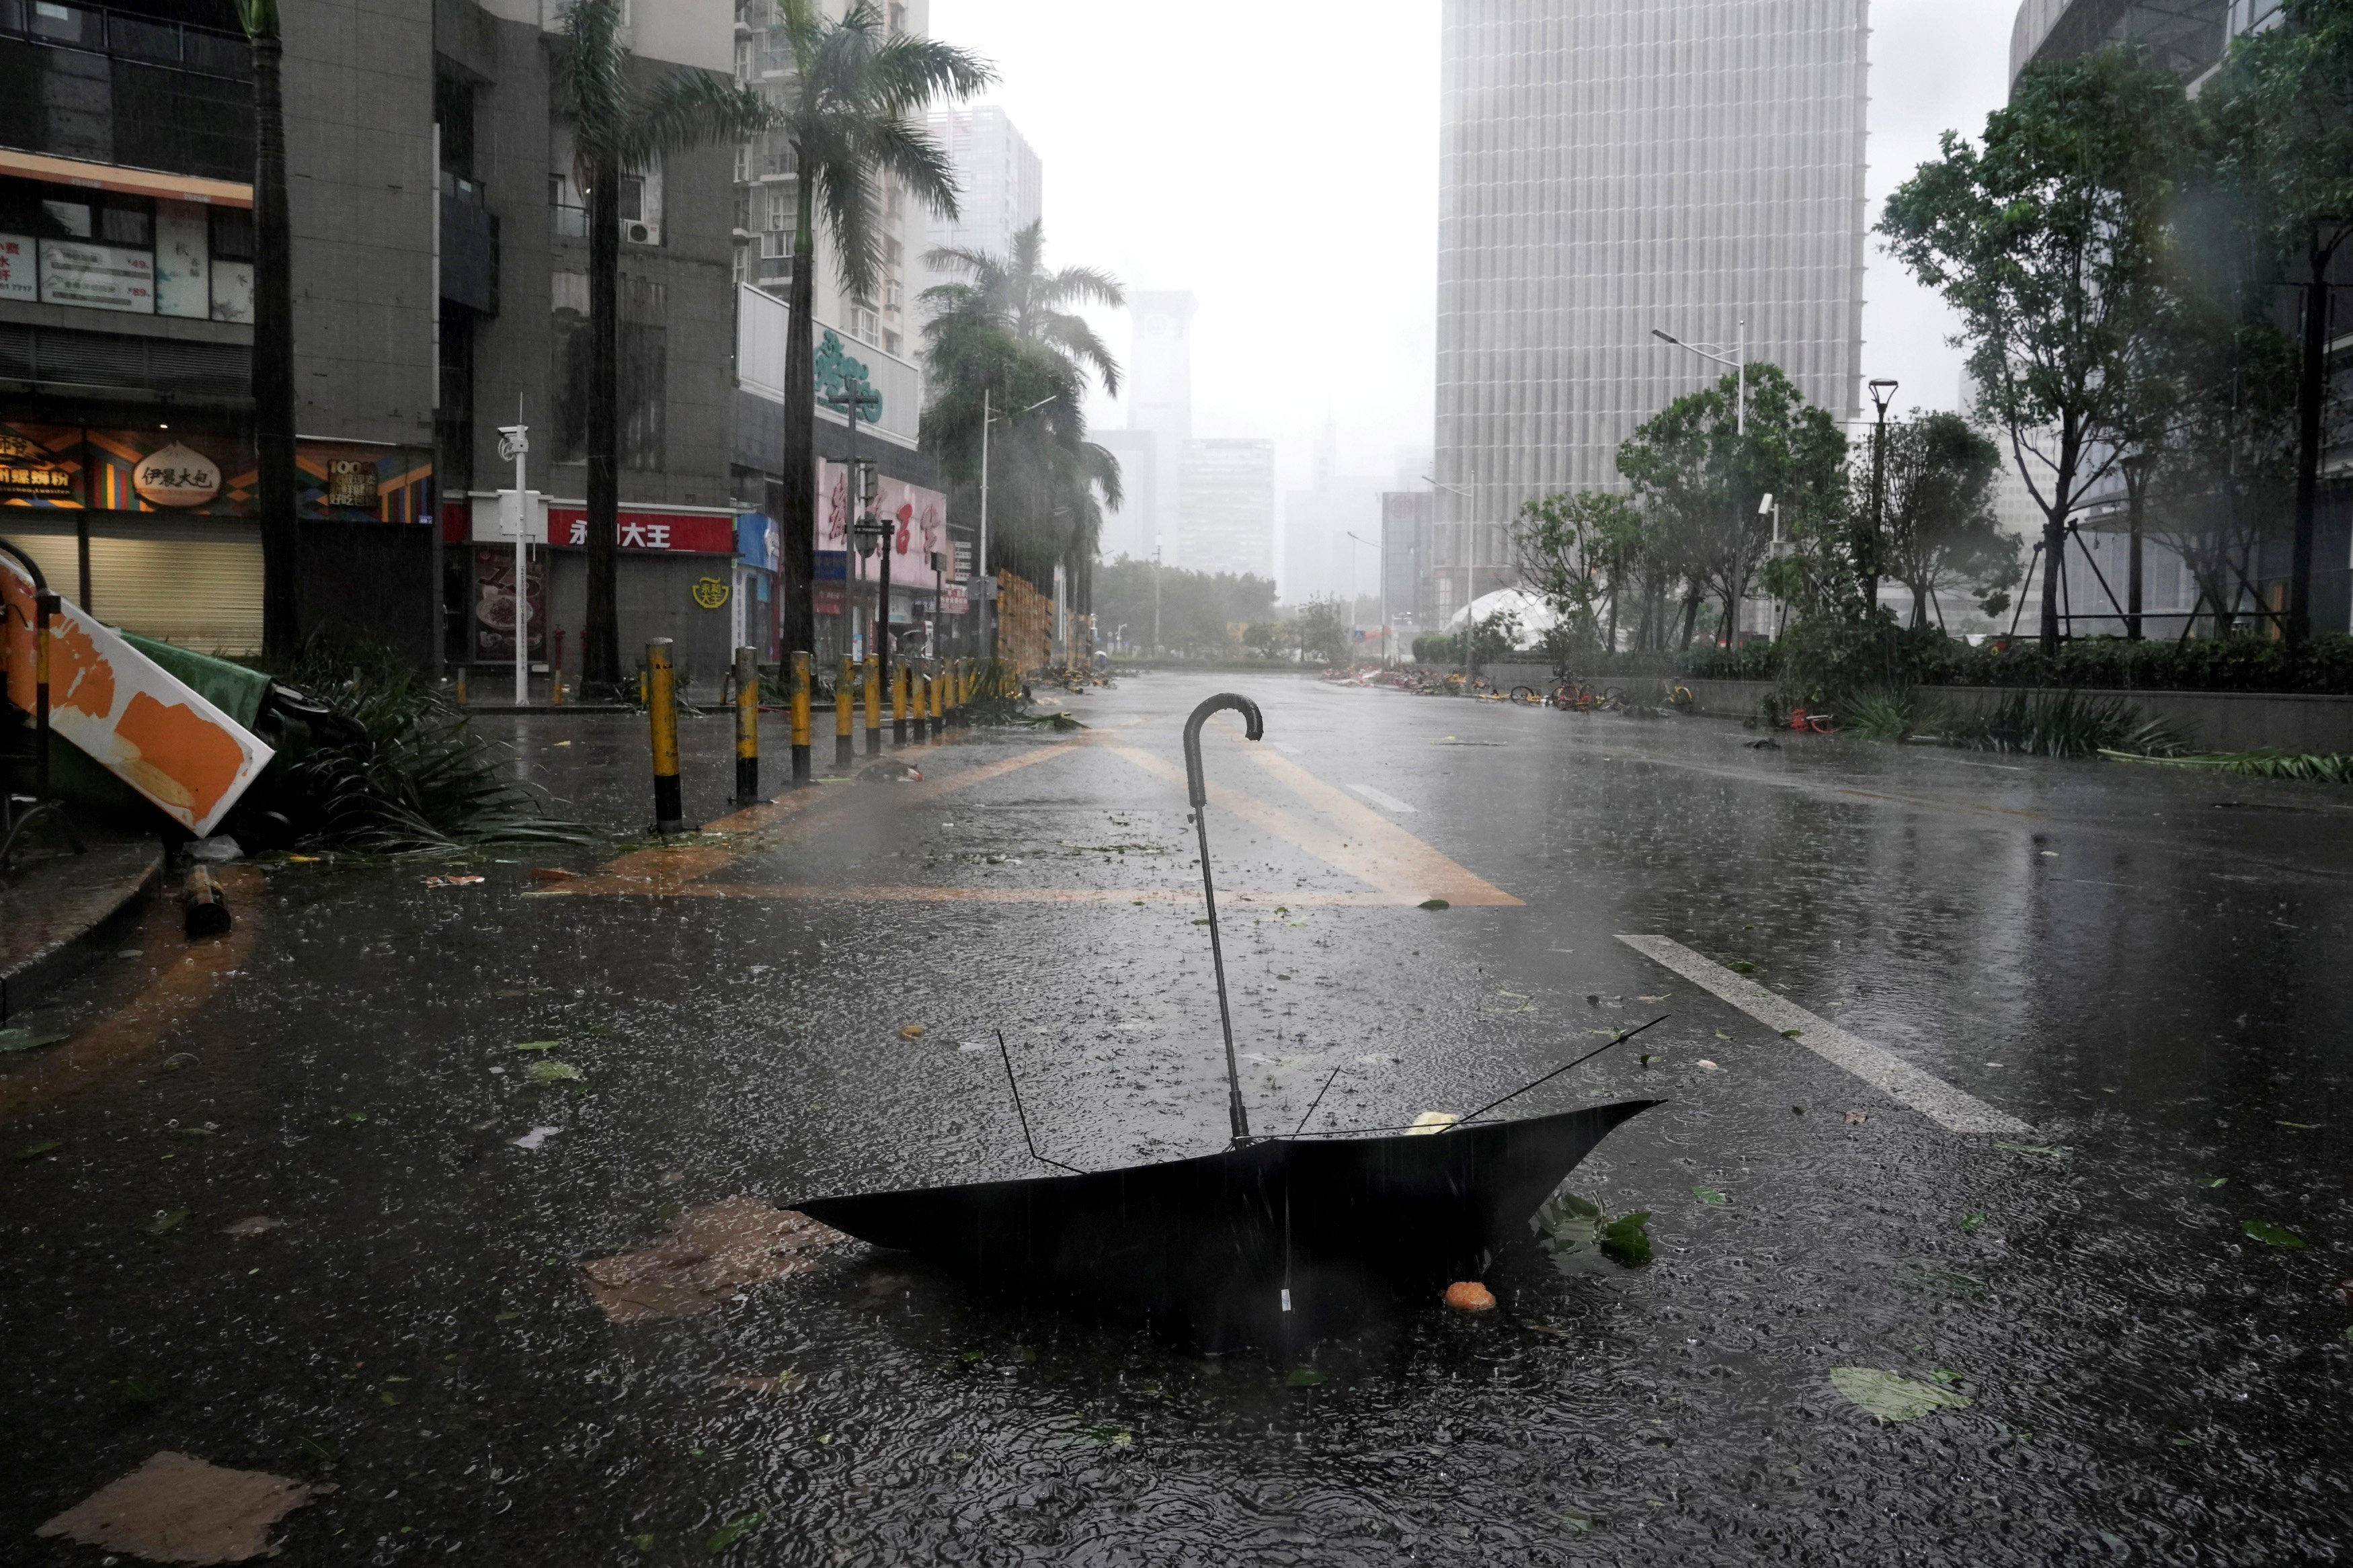 An umbrella is seen on a road after a rainstorm as Typhoon Mangkhut makes landfall in Guangdong province, in Shenzhen, China September 16, 2018. Photo: REUTERS